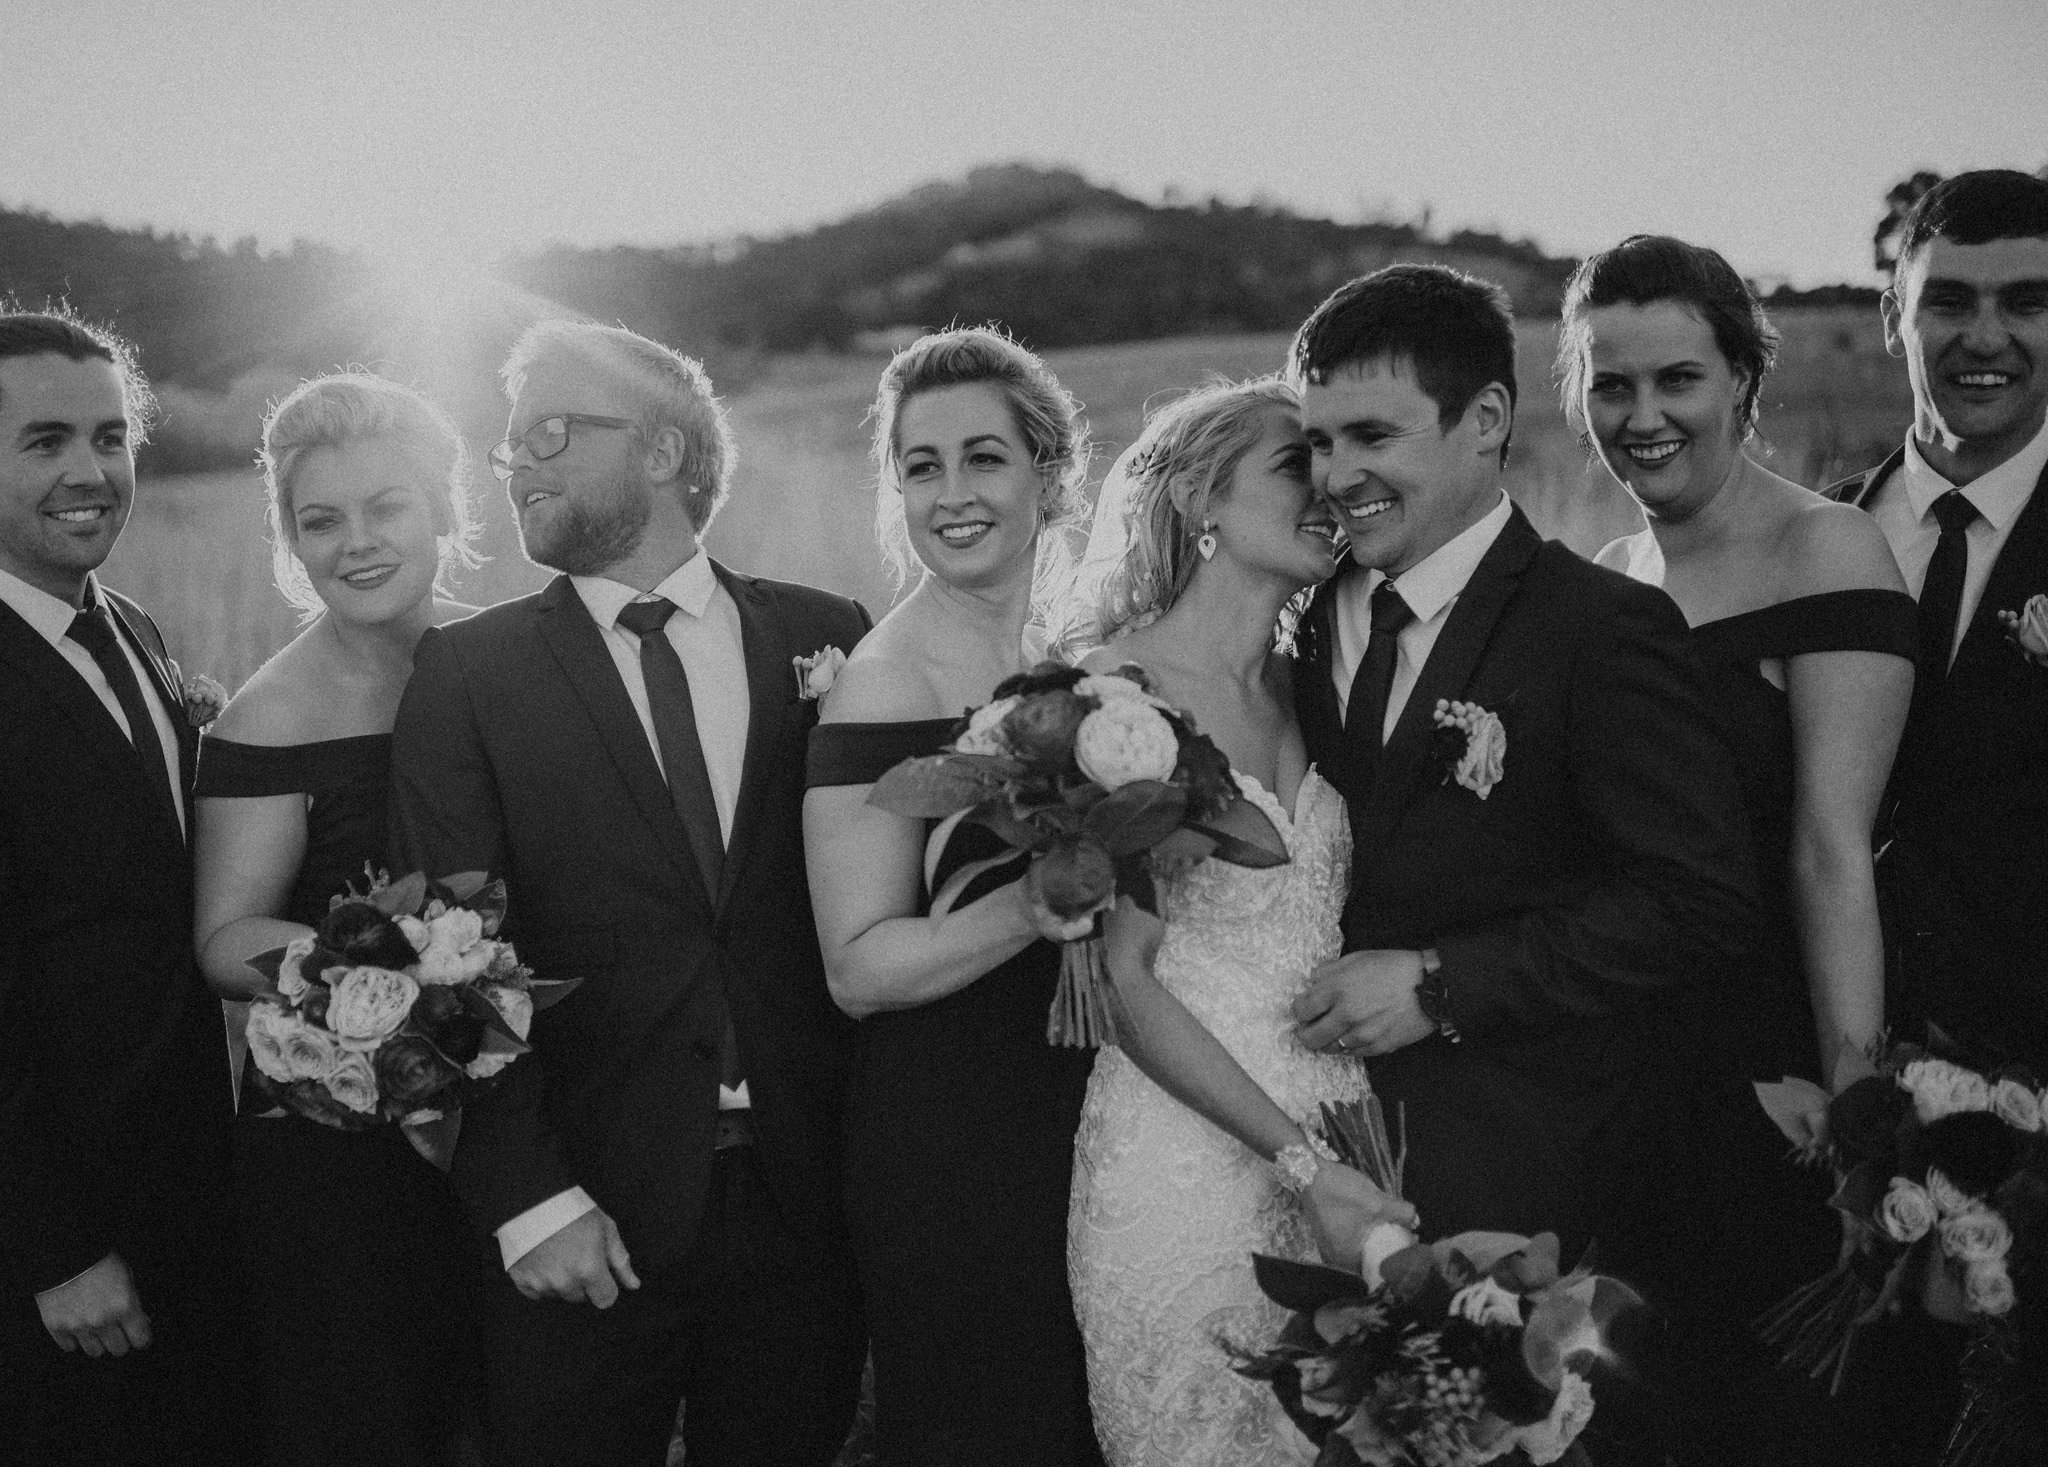 425FionaVailPhotography-BECKY&SIMONHITCHED.jpg